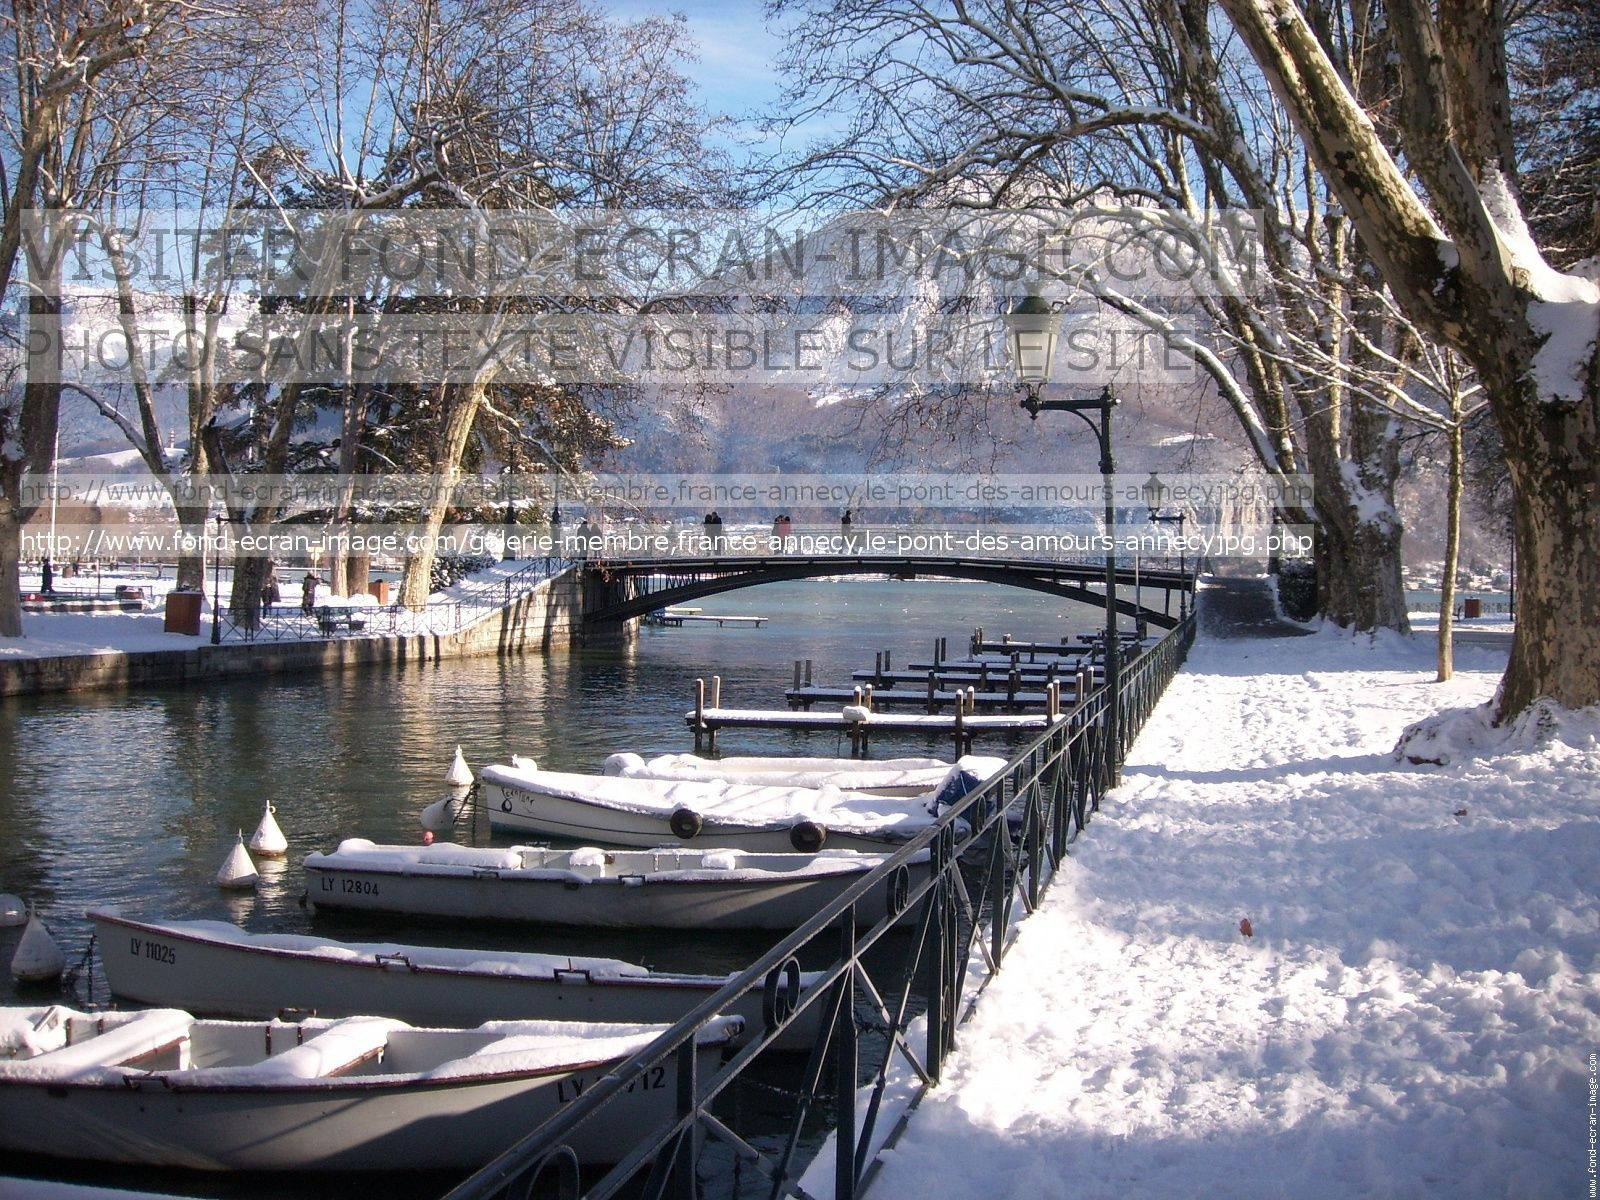 France annecy le pont des amours annecy the firesteel pinterest alpine lake france and bridge - Pont des amours ...